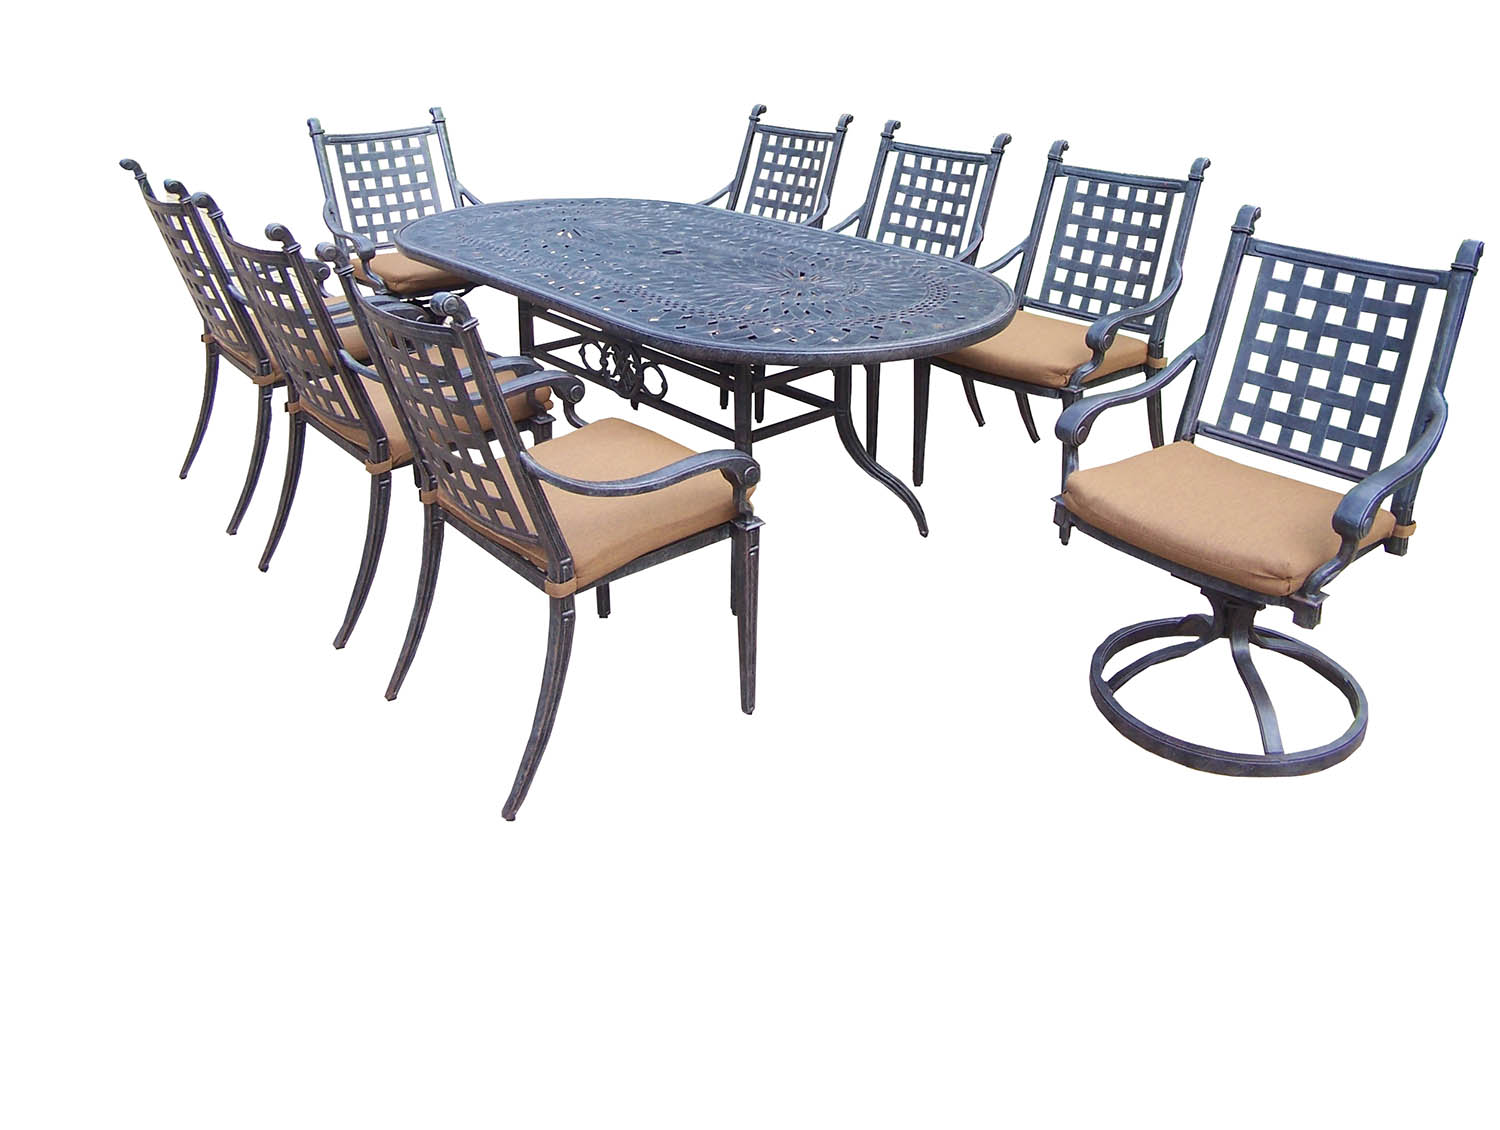 Choose Aged Belmont Oval Dining Set Sunbrella Cushions Product Photo